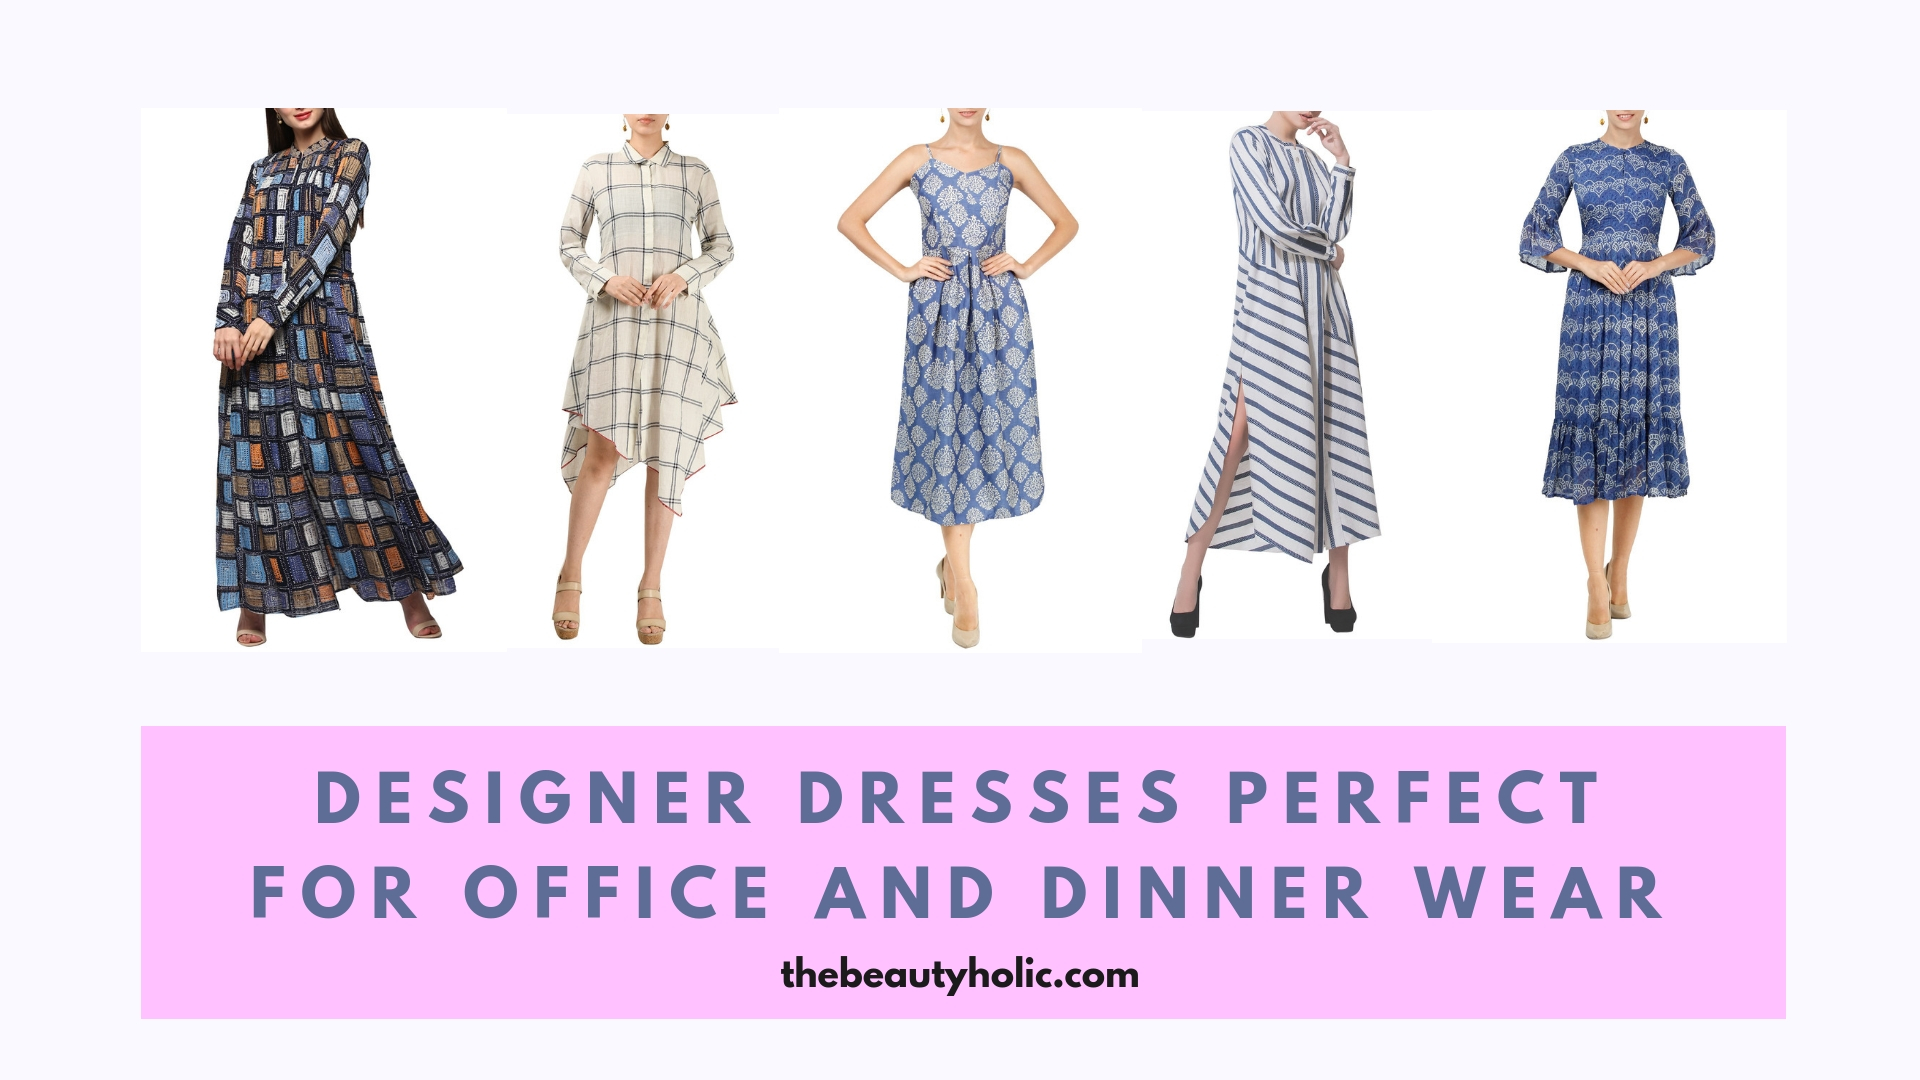 Designer Dresses Perfect for Office and Dinner Wear